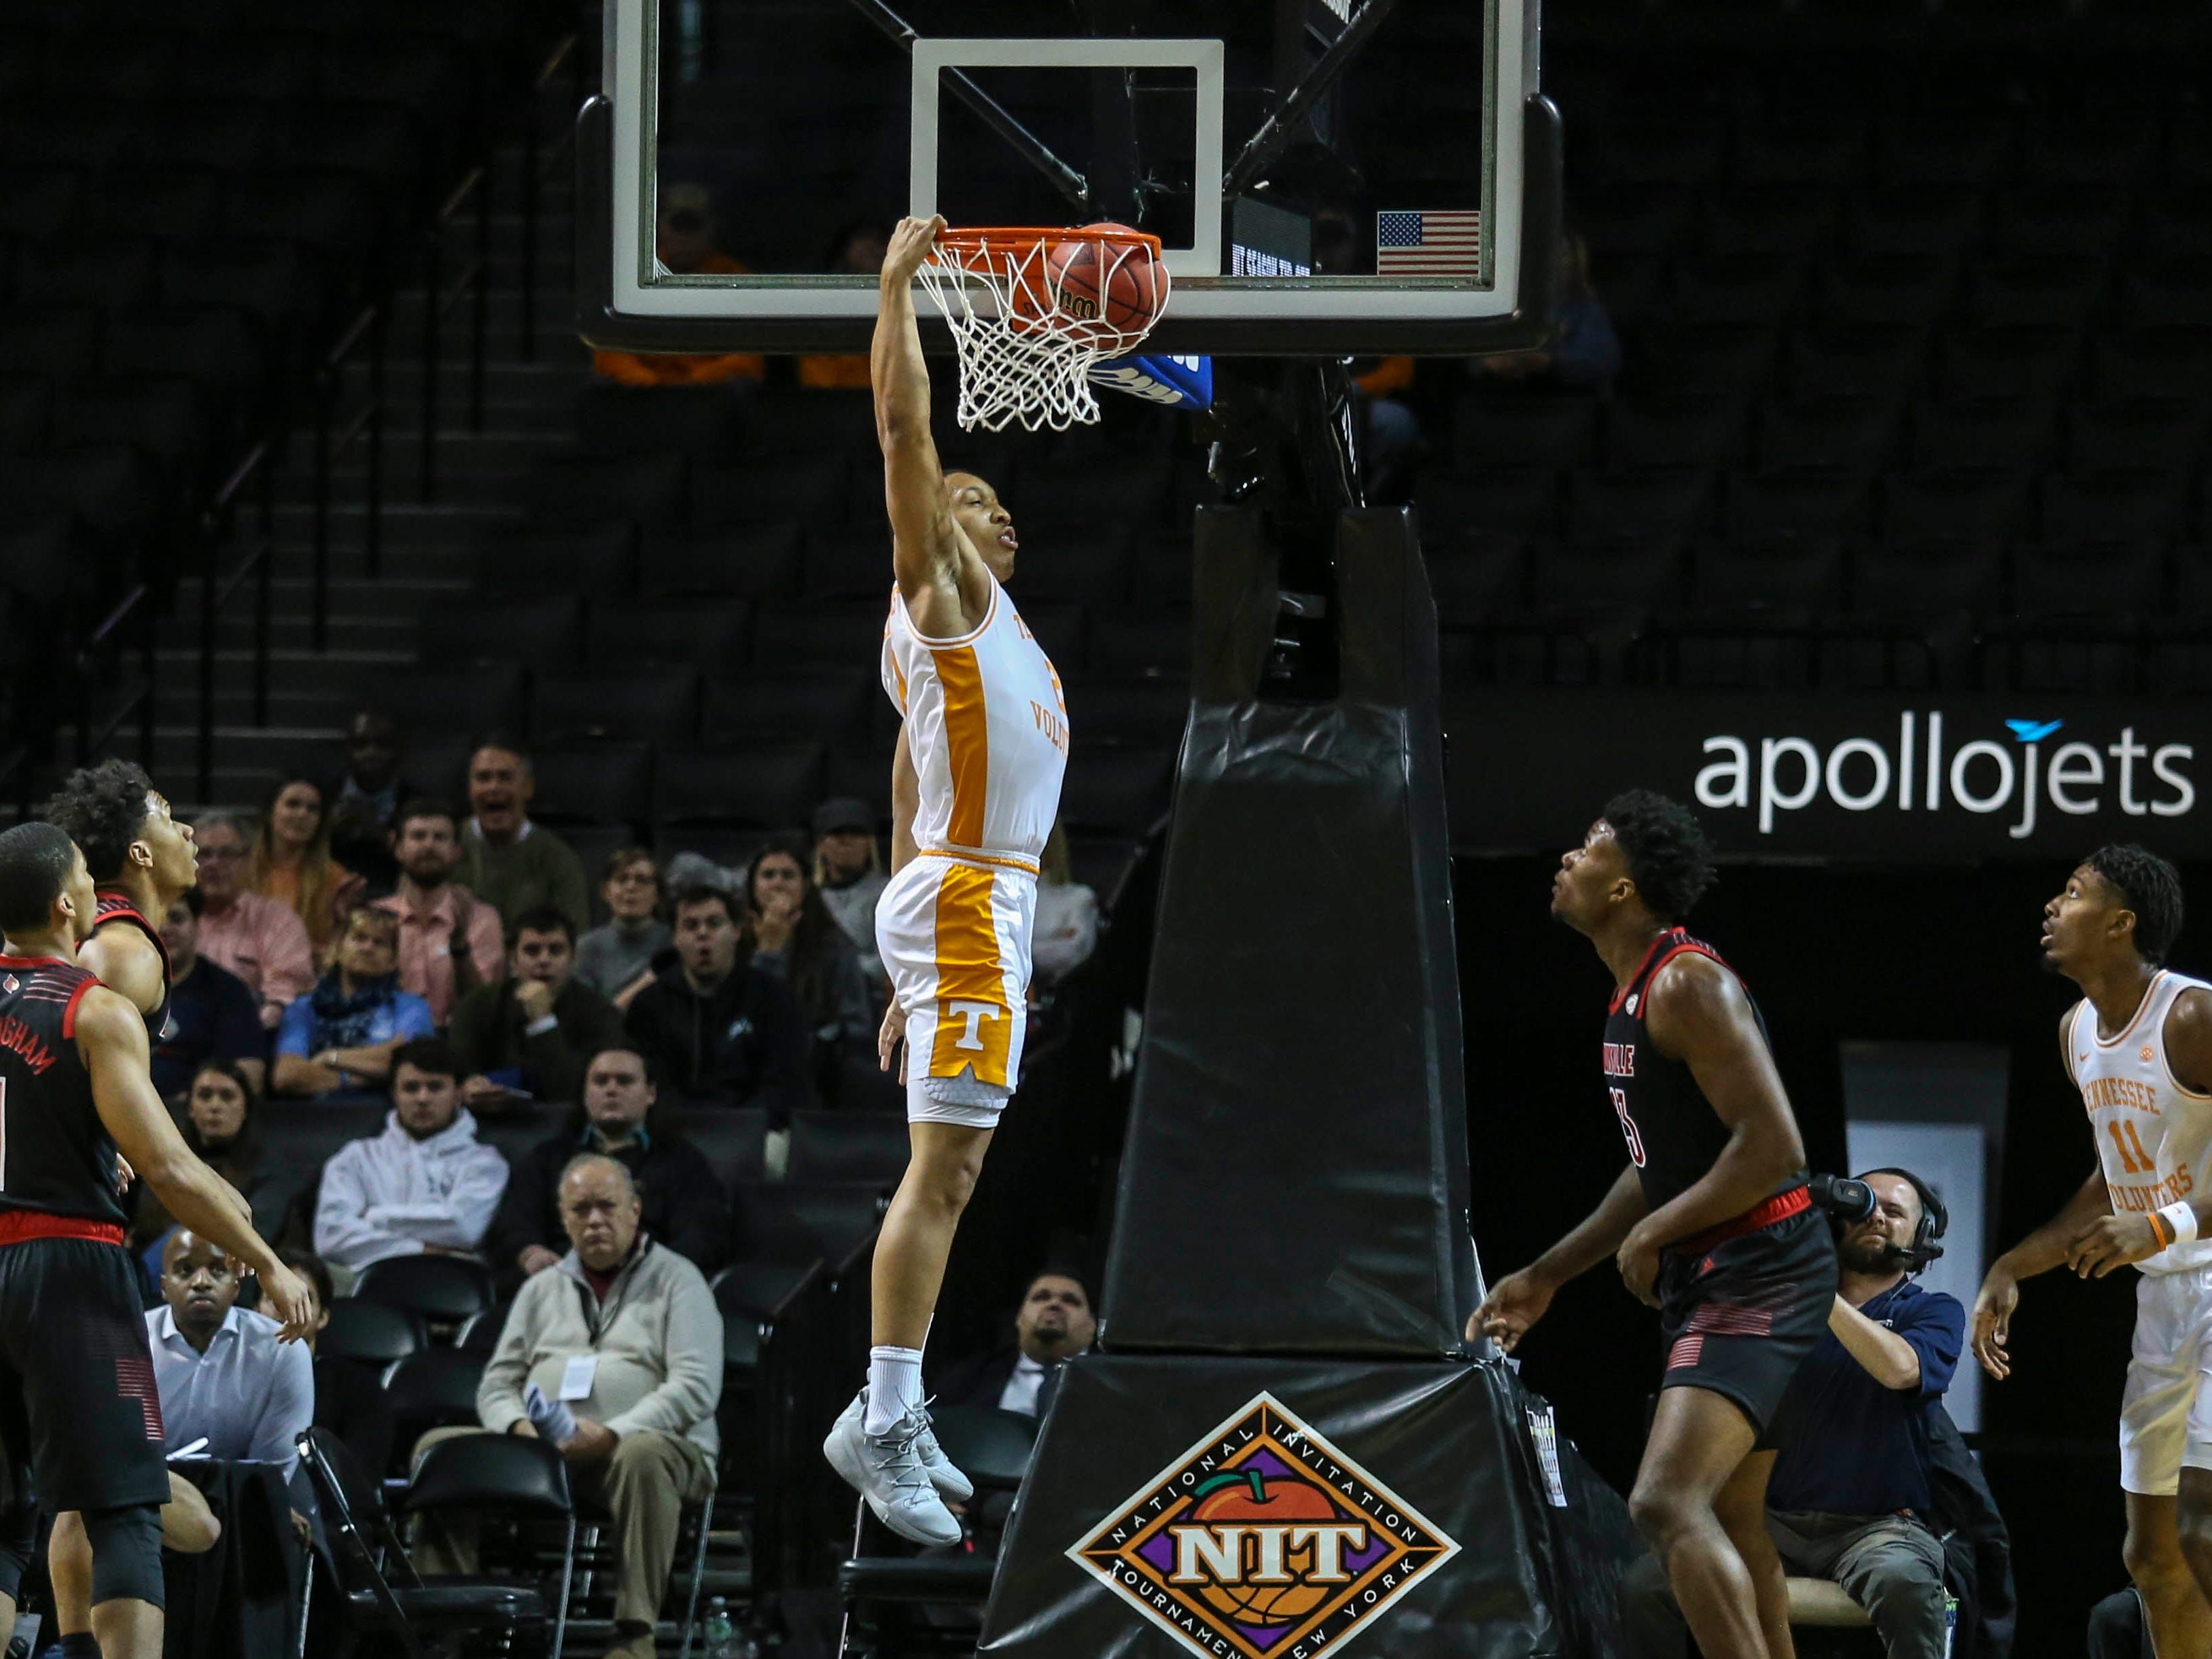 Nov 21, 2018; Brooklyn, NY, USA; Tennessee Volunteers forward Grant Williams (2) dunks in the first half against the Louisville Cardinals during the NIT Tip Off at Barclays Center. Mandatory Credit: Wendell Cruz-USA TODAY Sports